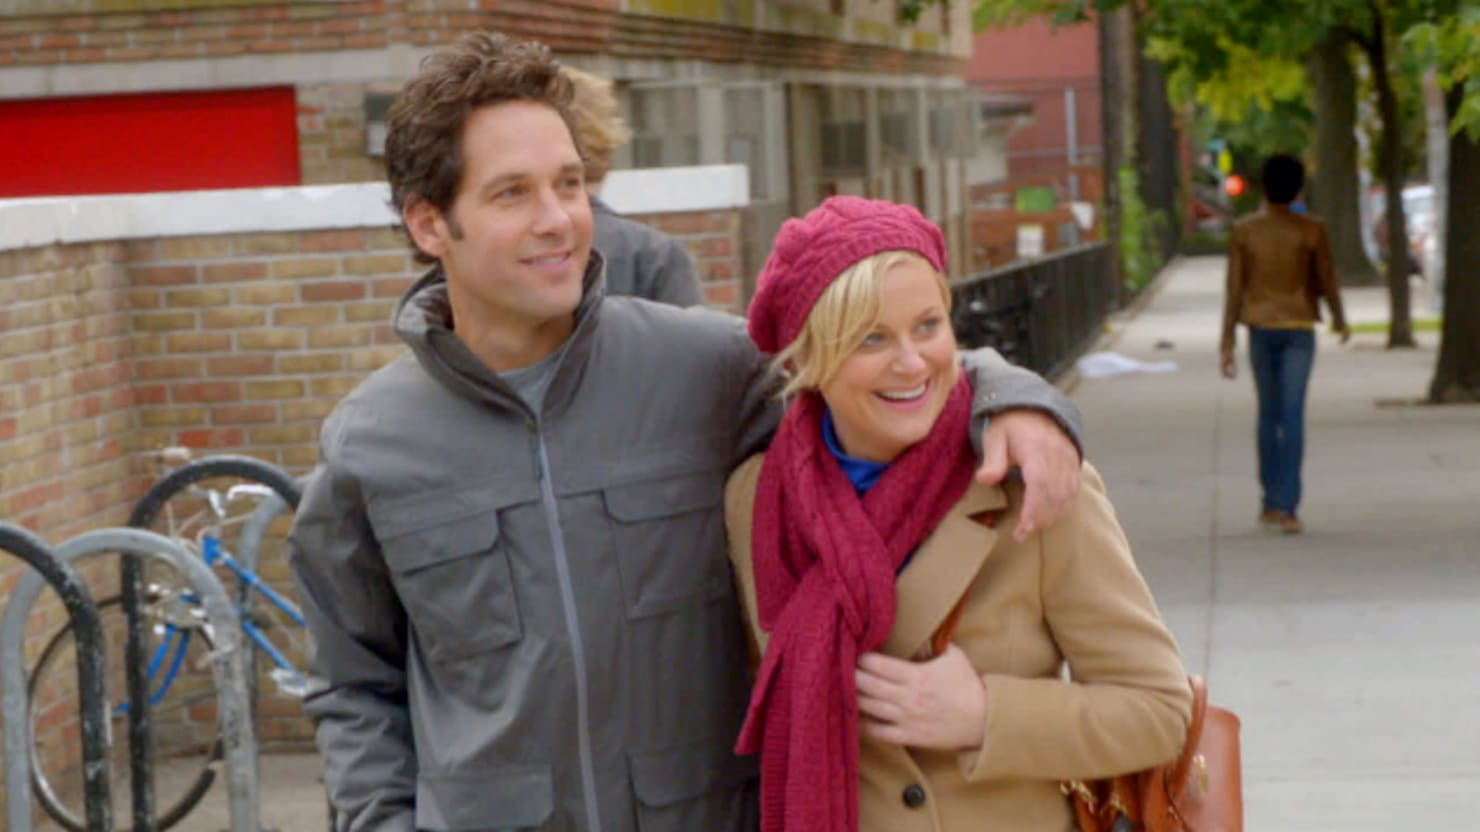 Paul Rudd and Amy Poehler's Ultimate Rom Com Spoof 'They Came Together'